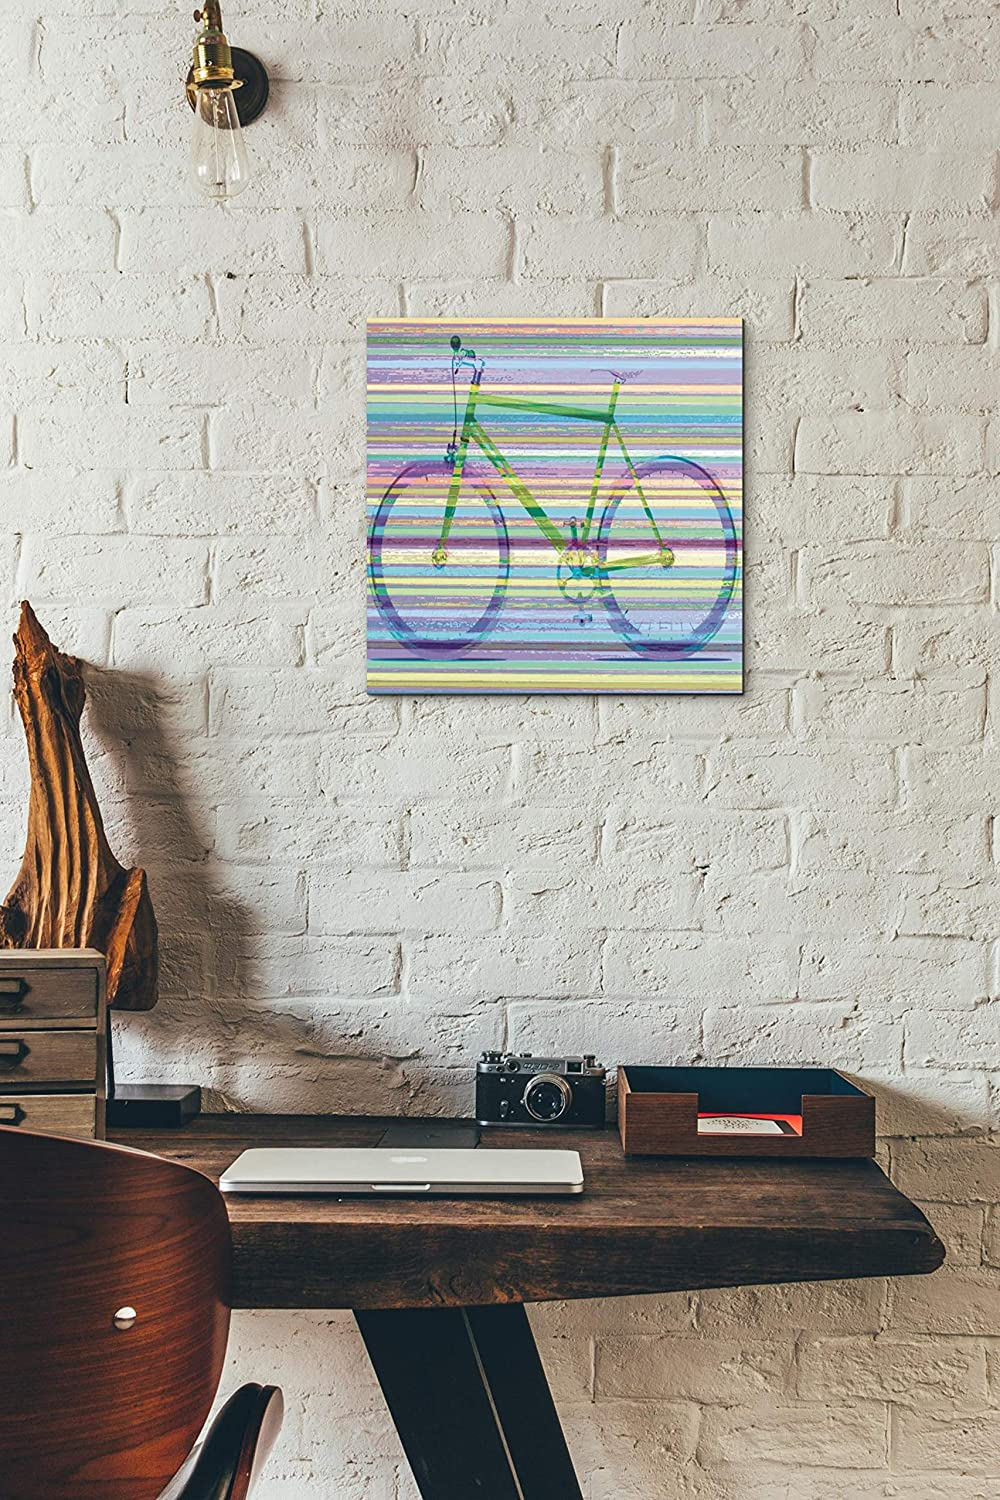 Epic GraffitiStriped Bicycle by Monfils Giclee Canvas Wall Art 26x26